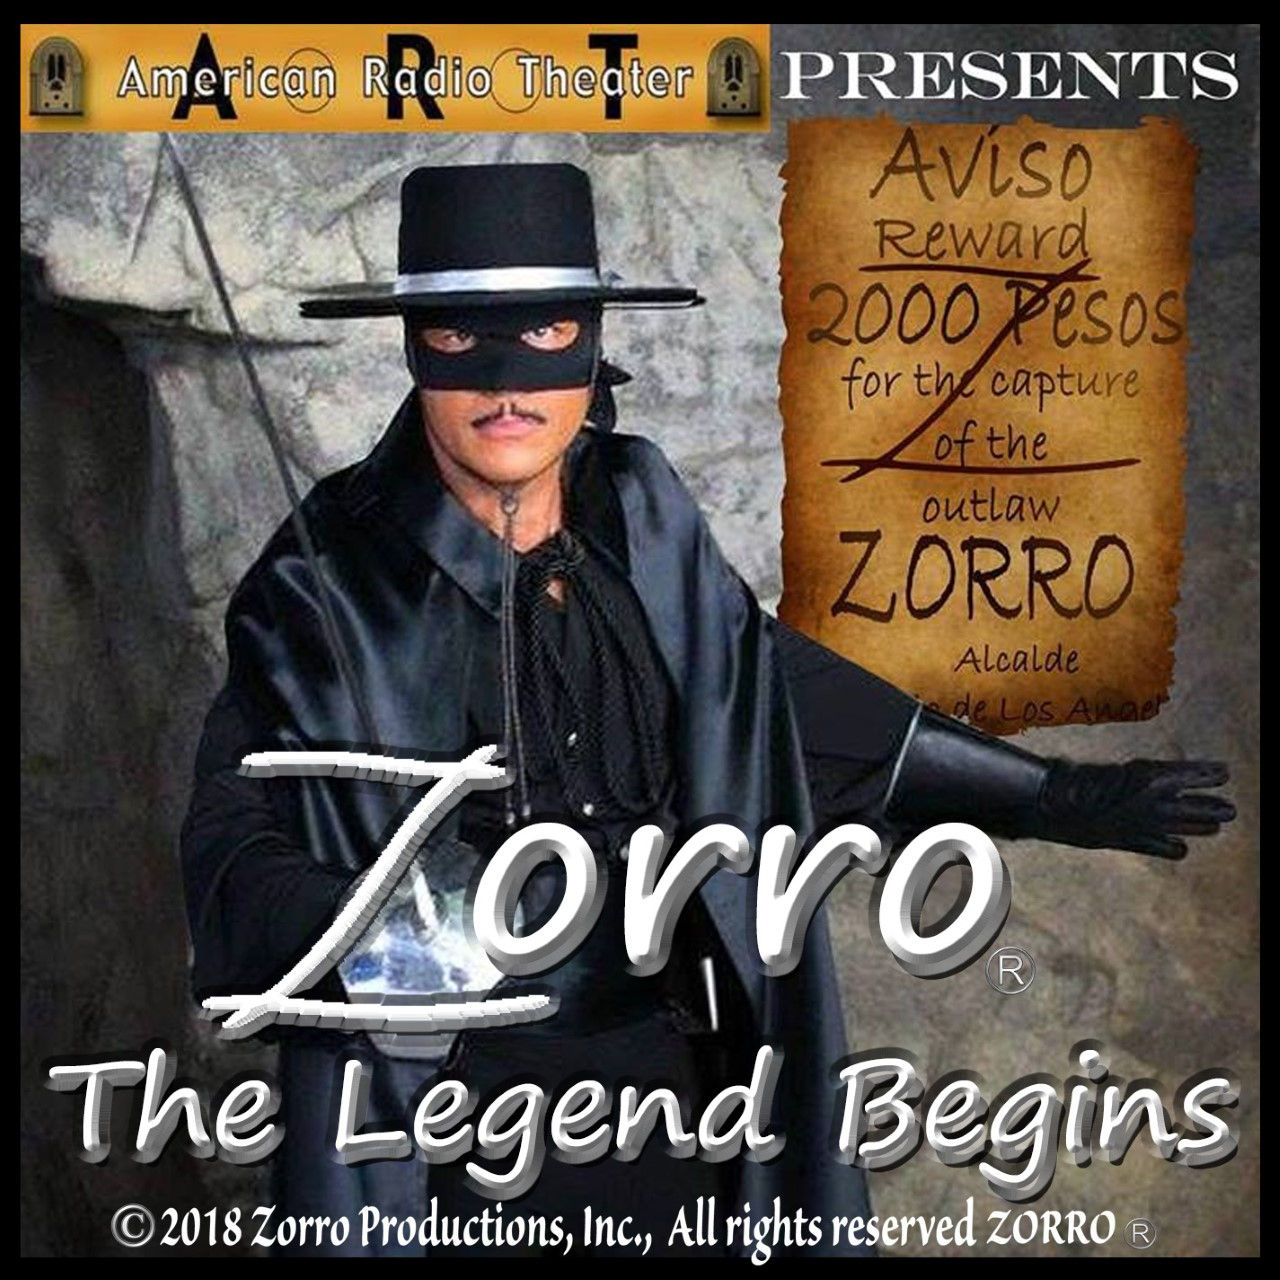 Zorro The Legend Begins Full-Cast Audio Drama